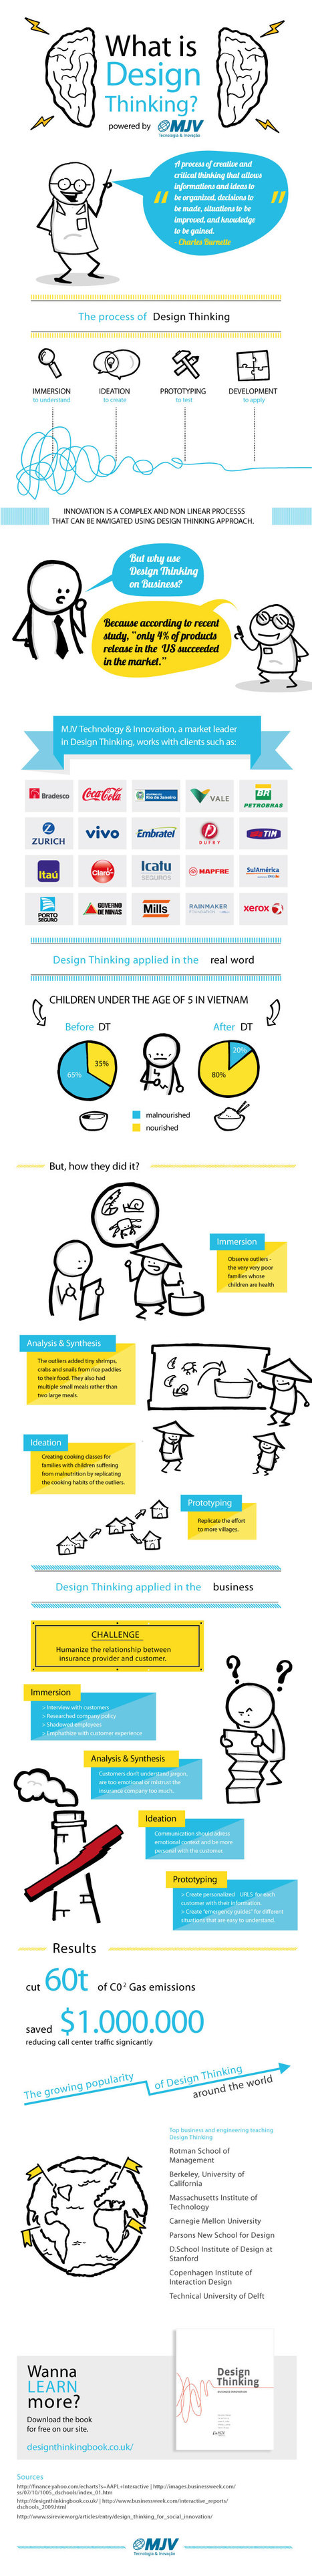 Design Thinking 101 | INFOGRAPHIC | Creative_Inspiration | Scoop.it